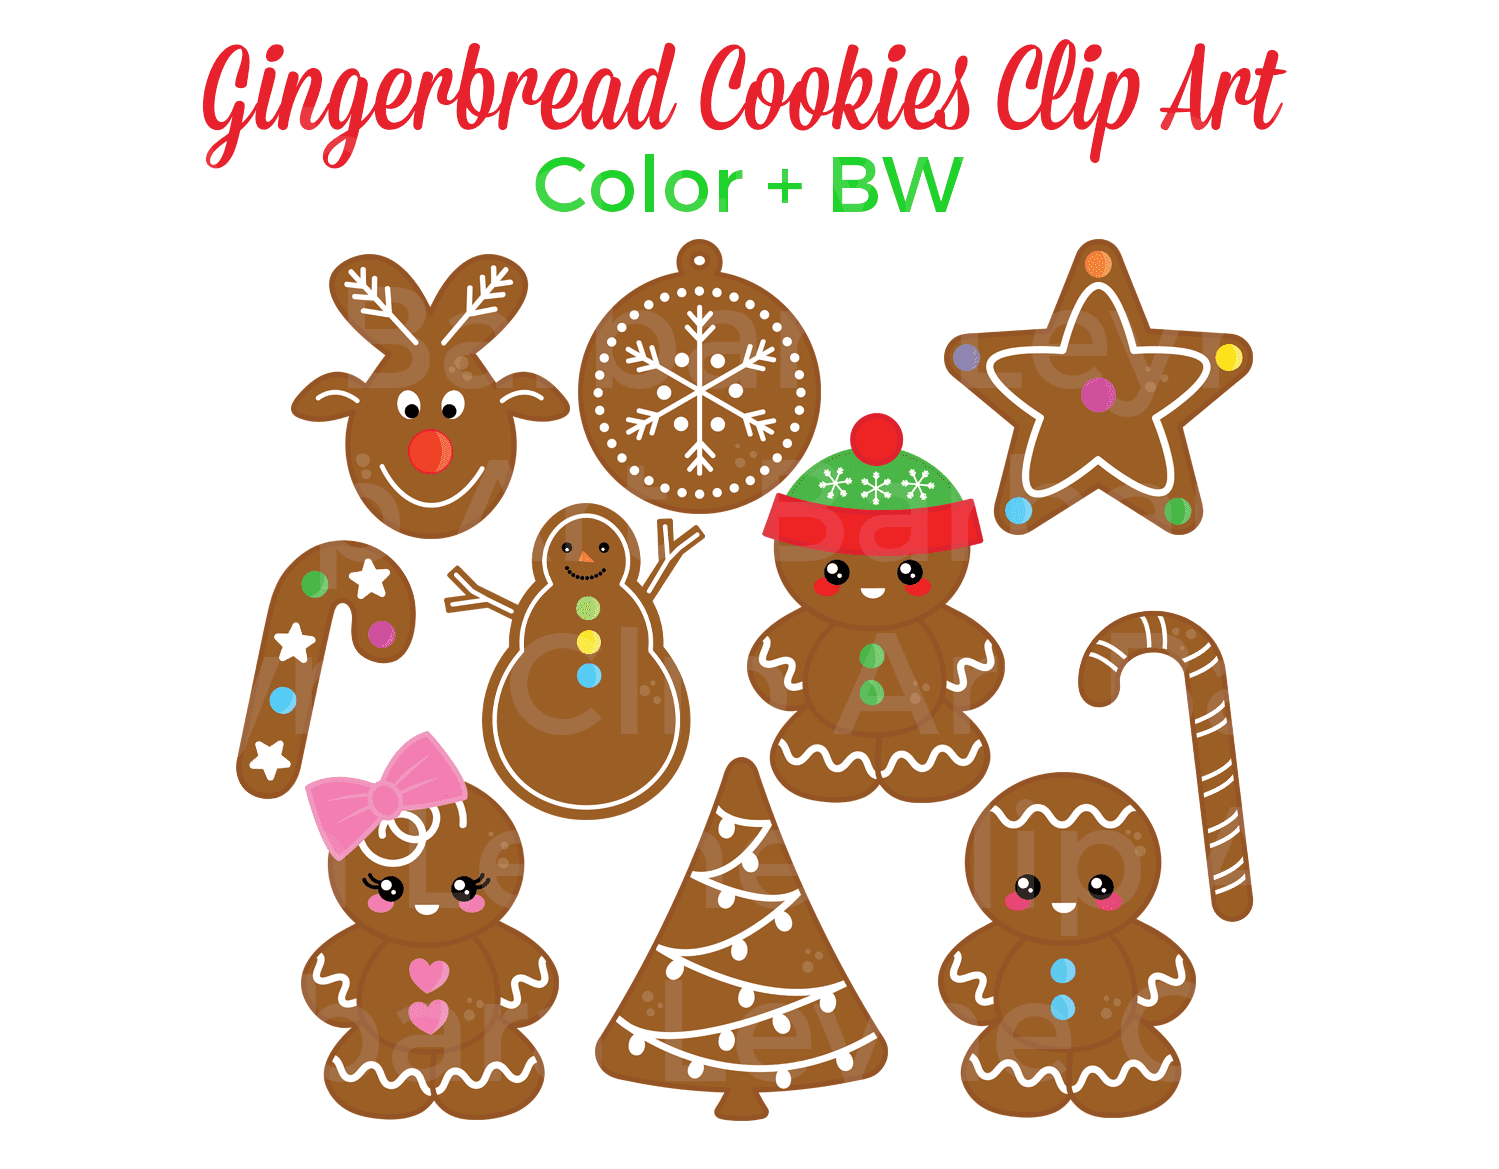 Super sweet gingerbread cookies clip art. Only $3 on TpT and Etsy. There are 10 colour and 10 bw images plus a bonus girl!